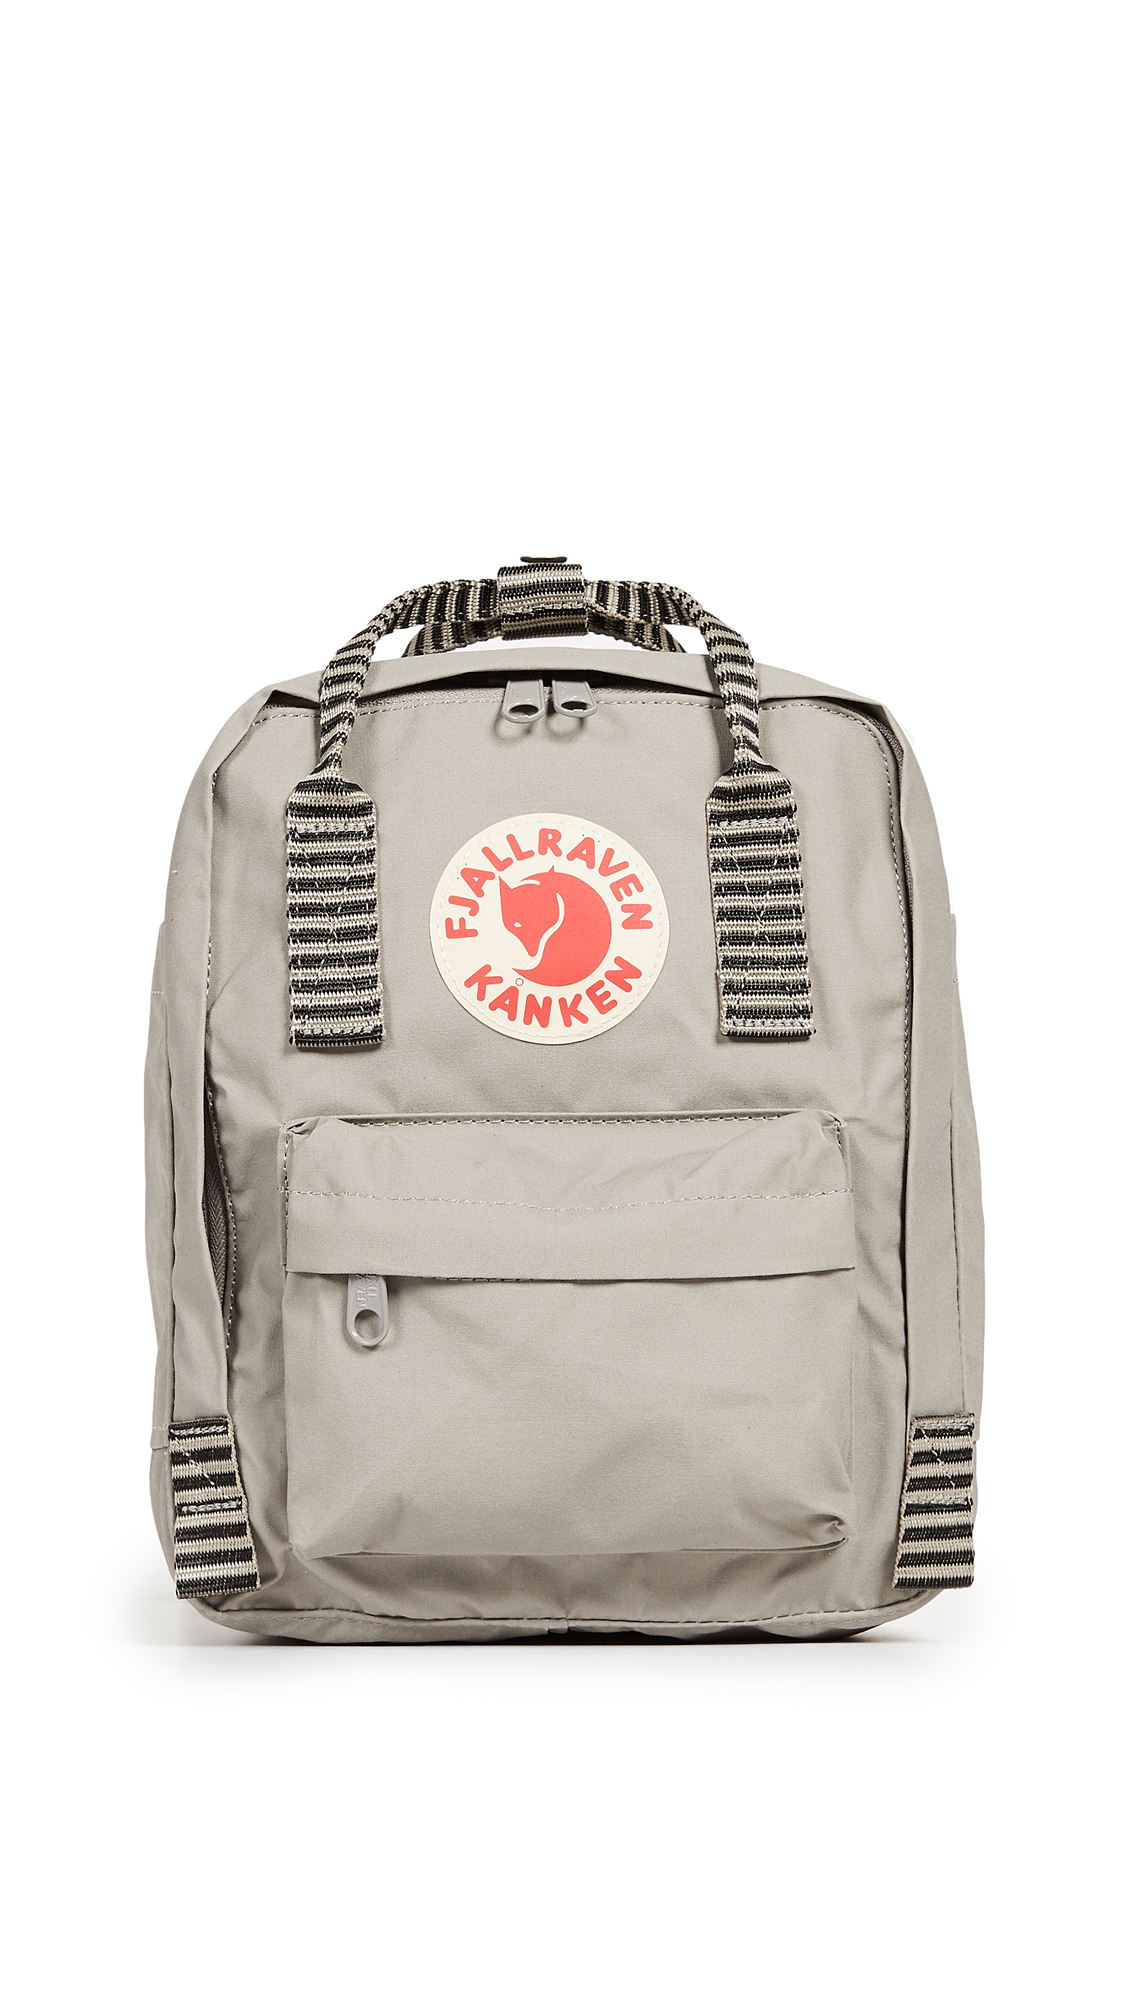 FJALL RAVEN Kanken Mini Backpack in Fog/Striped